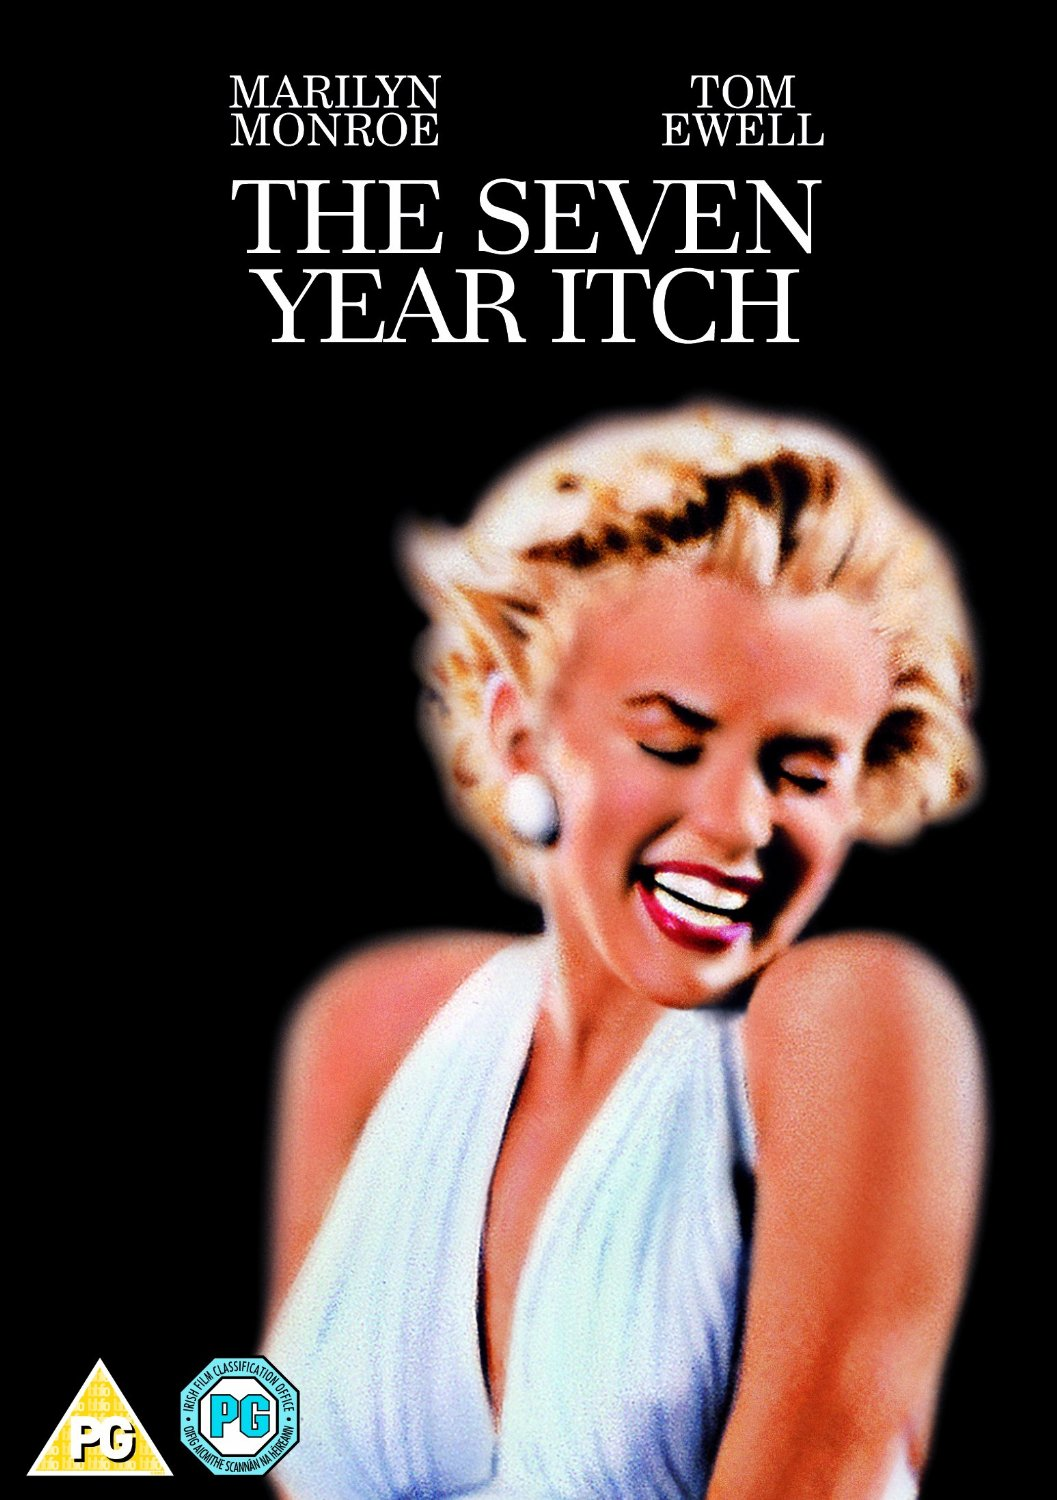 Buy The Seven Year Itch